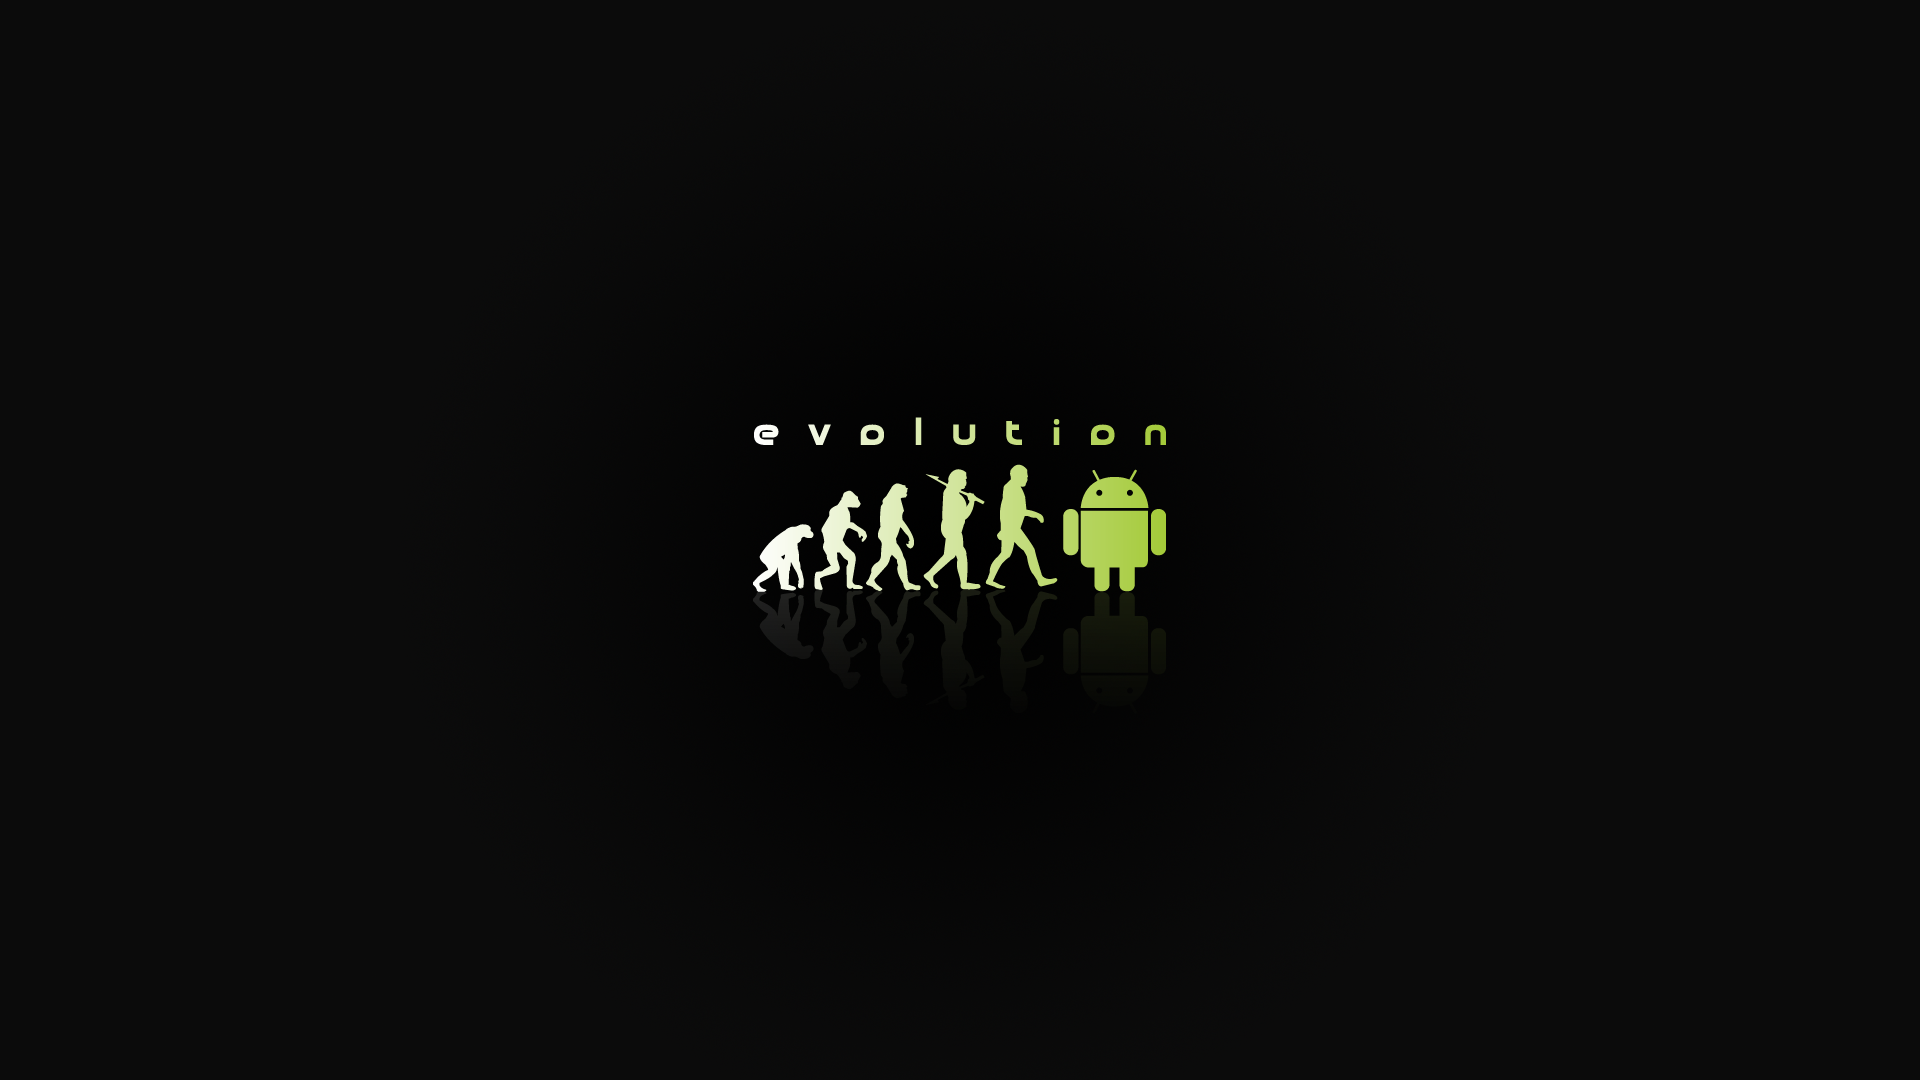 Android vs apple wallpaper Wallpaper Wide HD 1920x1080